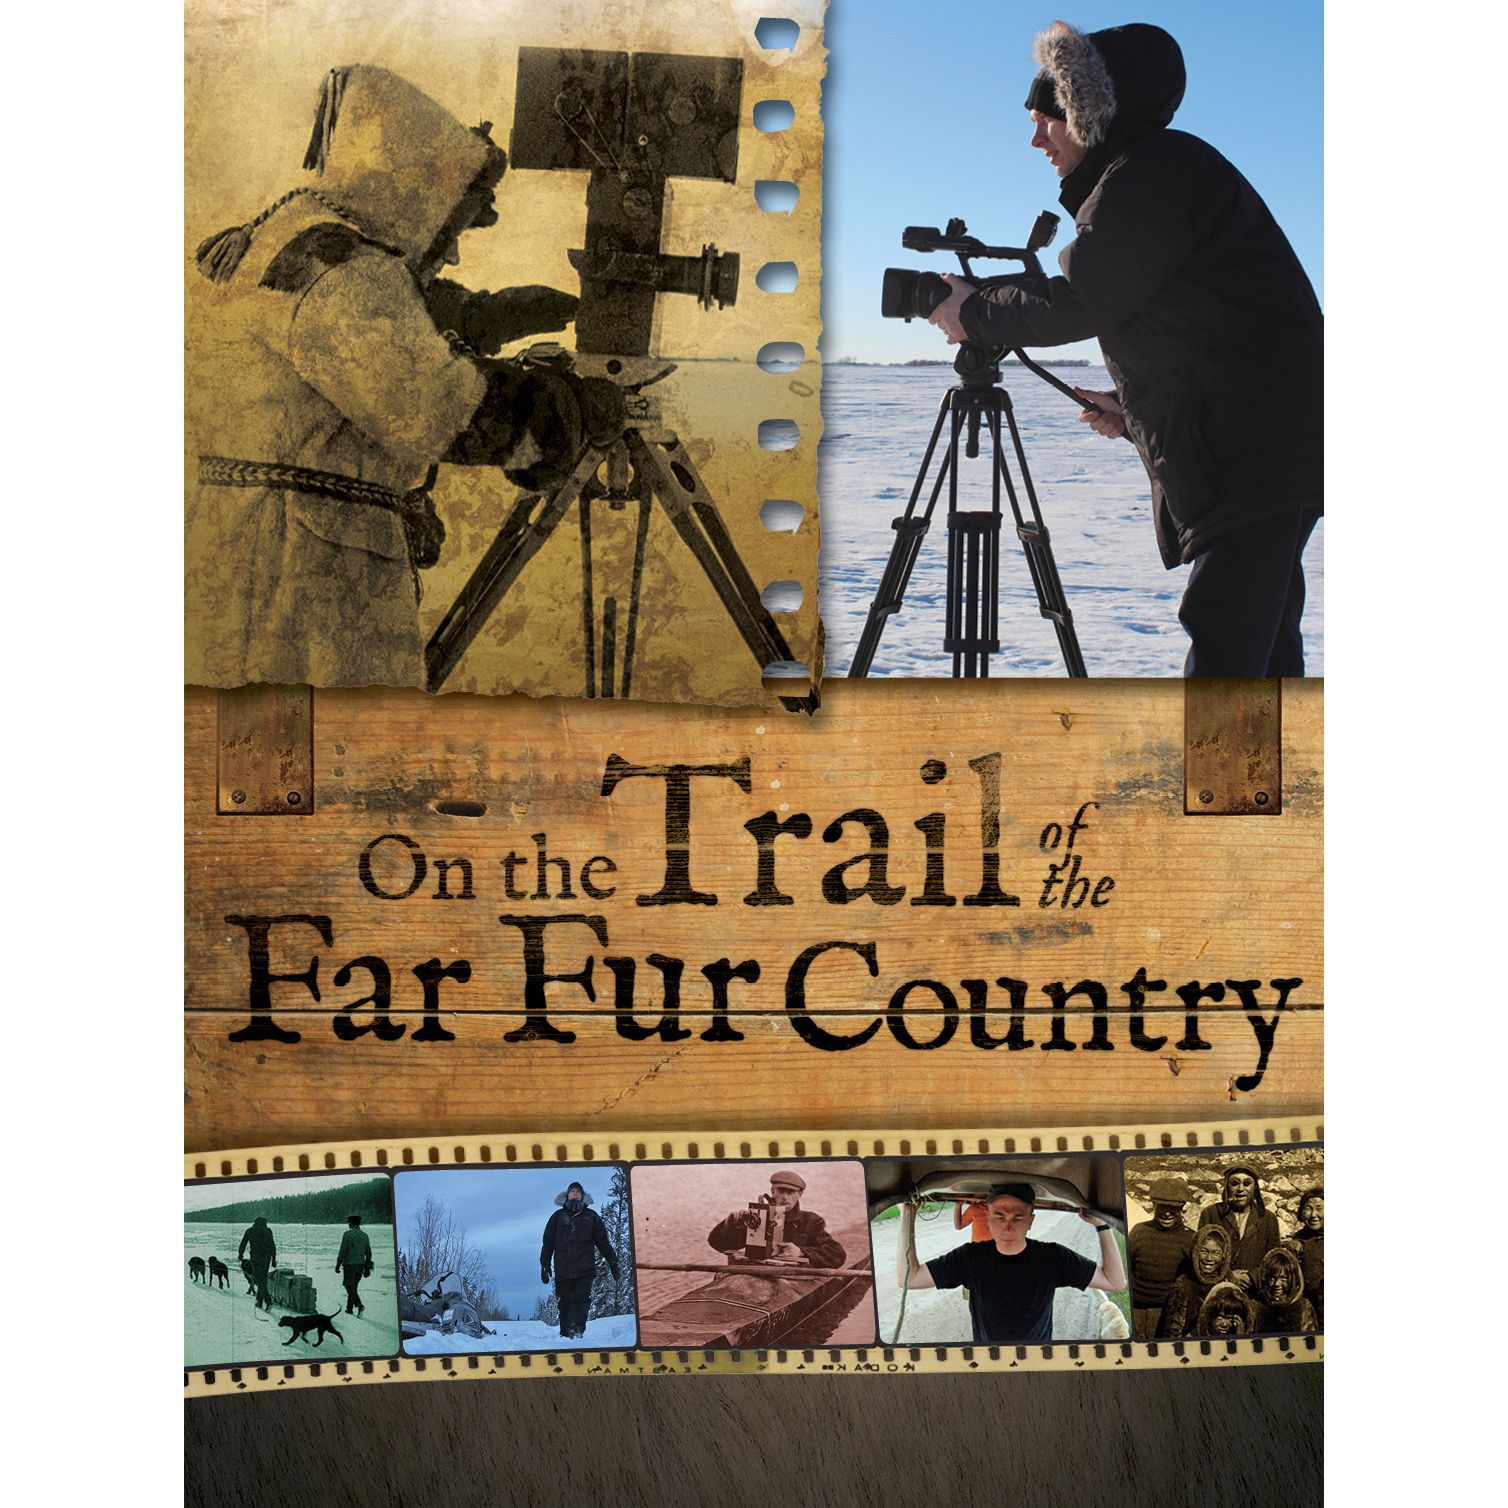 On the Trail of the Far Fur Country DVD | Winnipeg Film Group